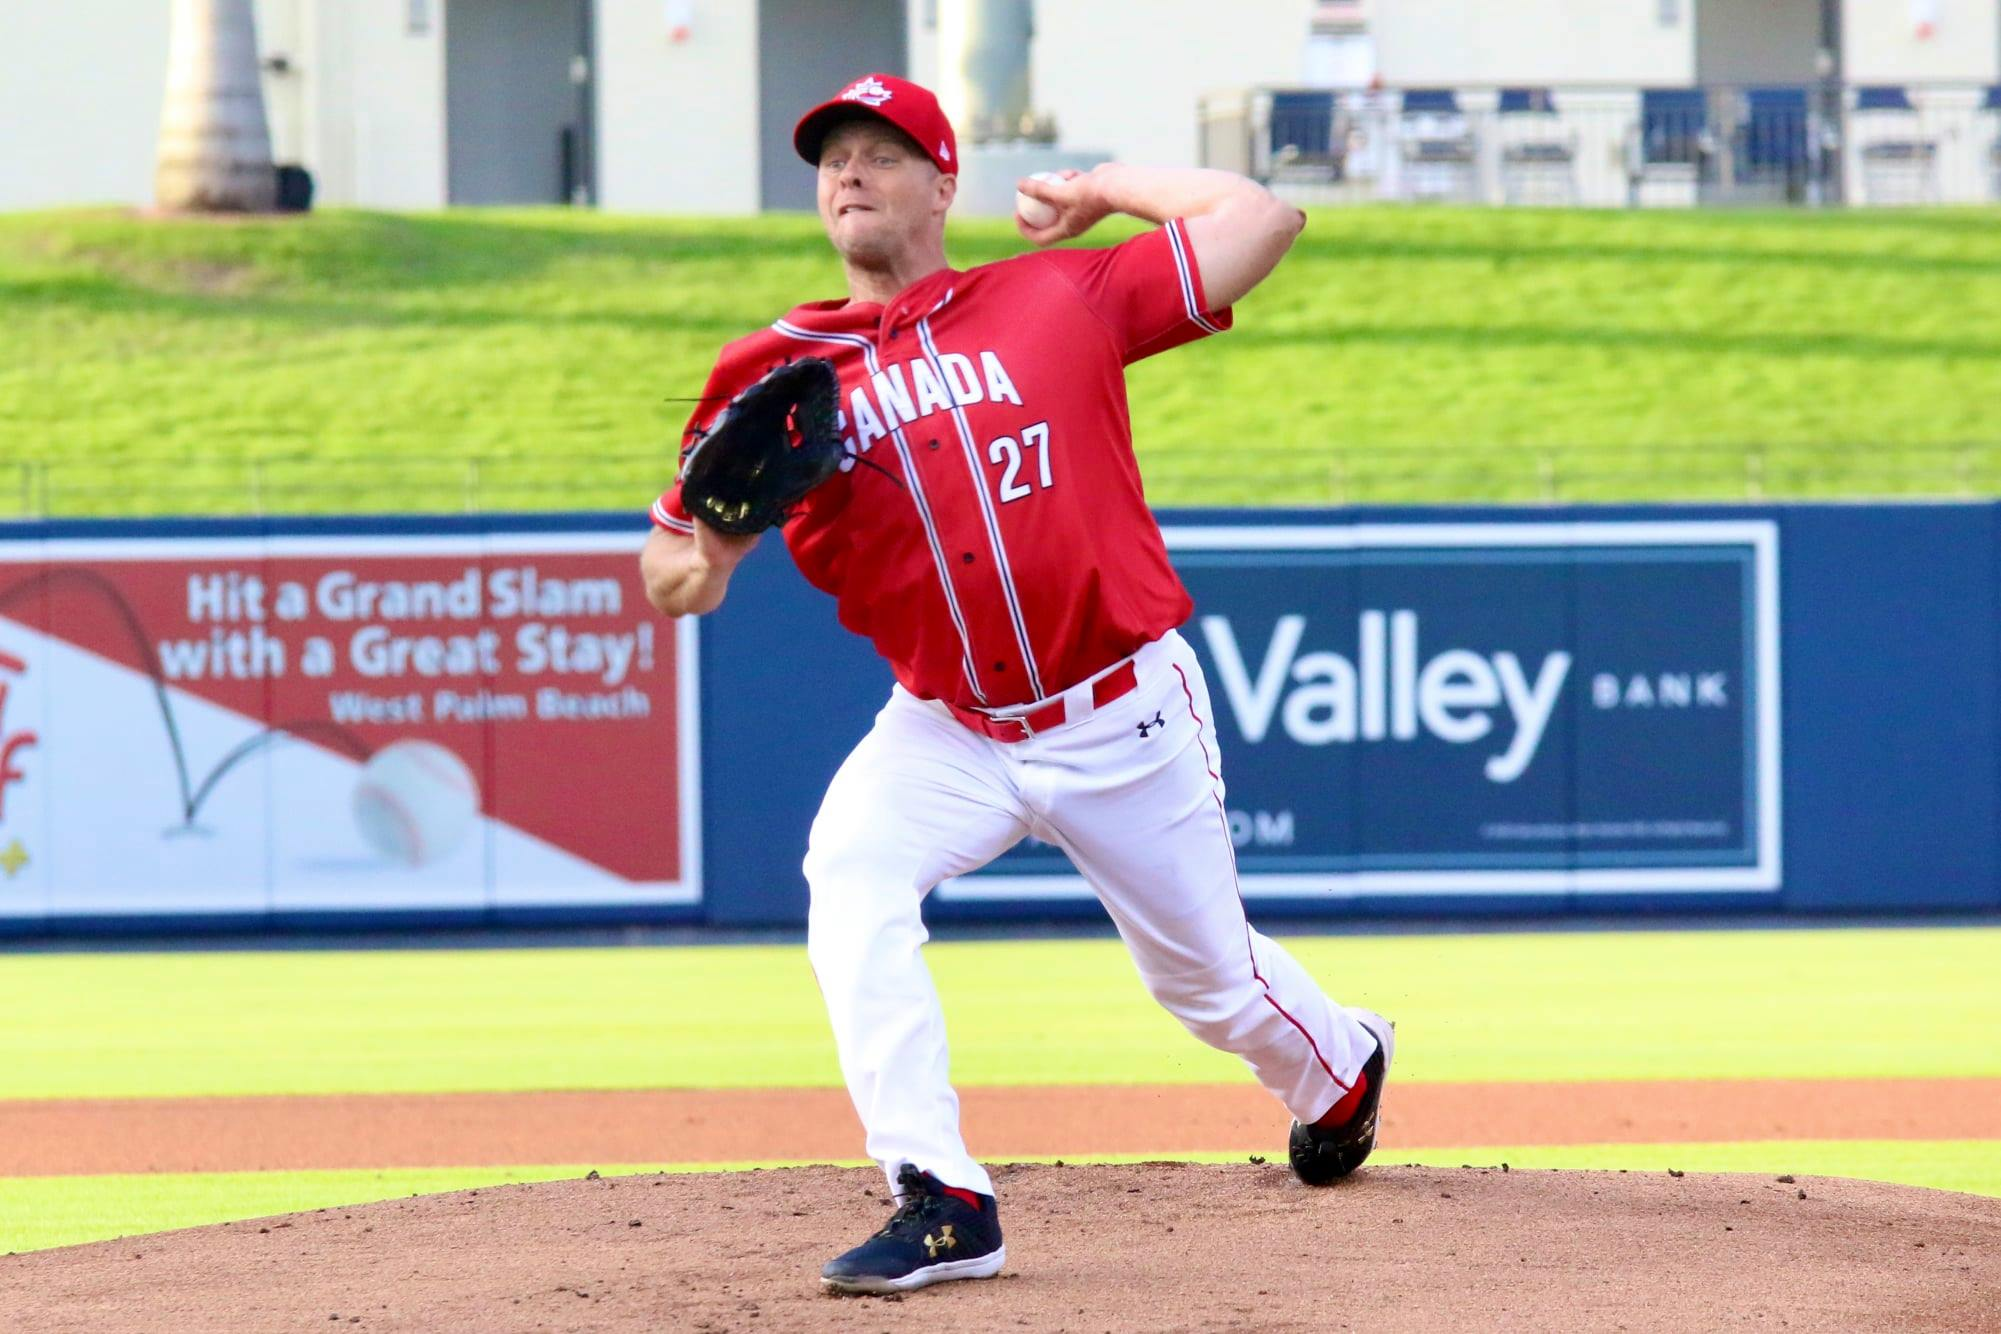 Albers returns to the big leagues